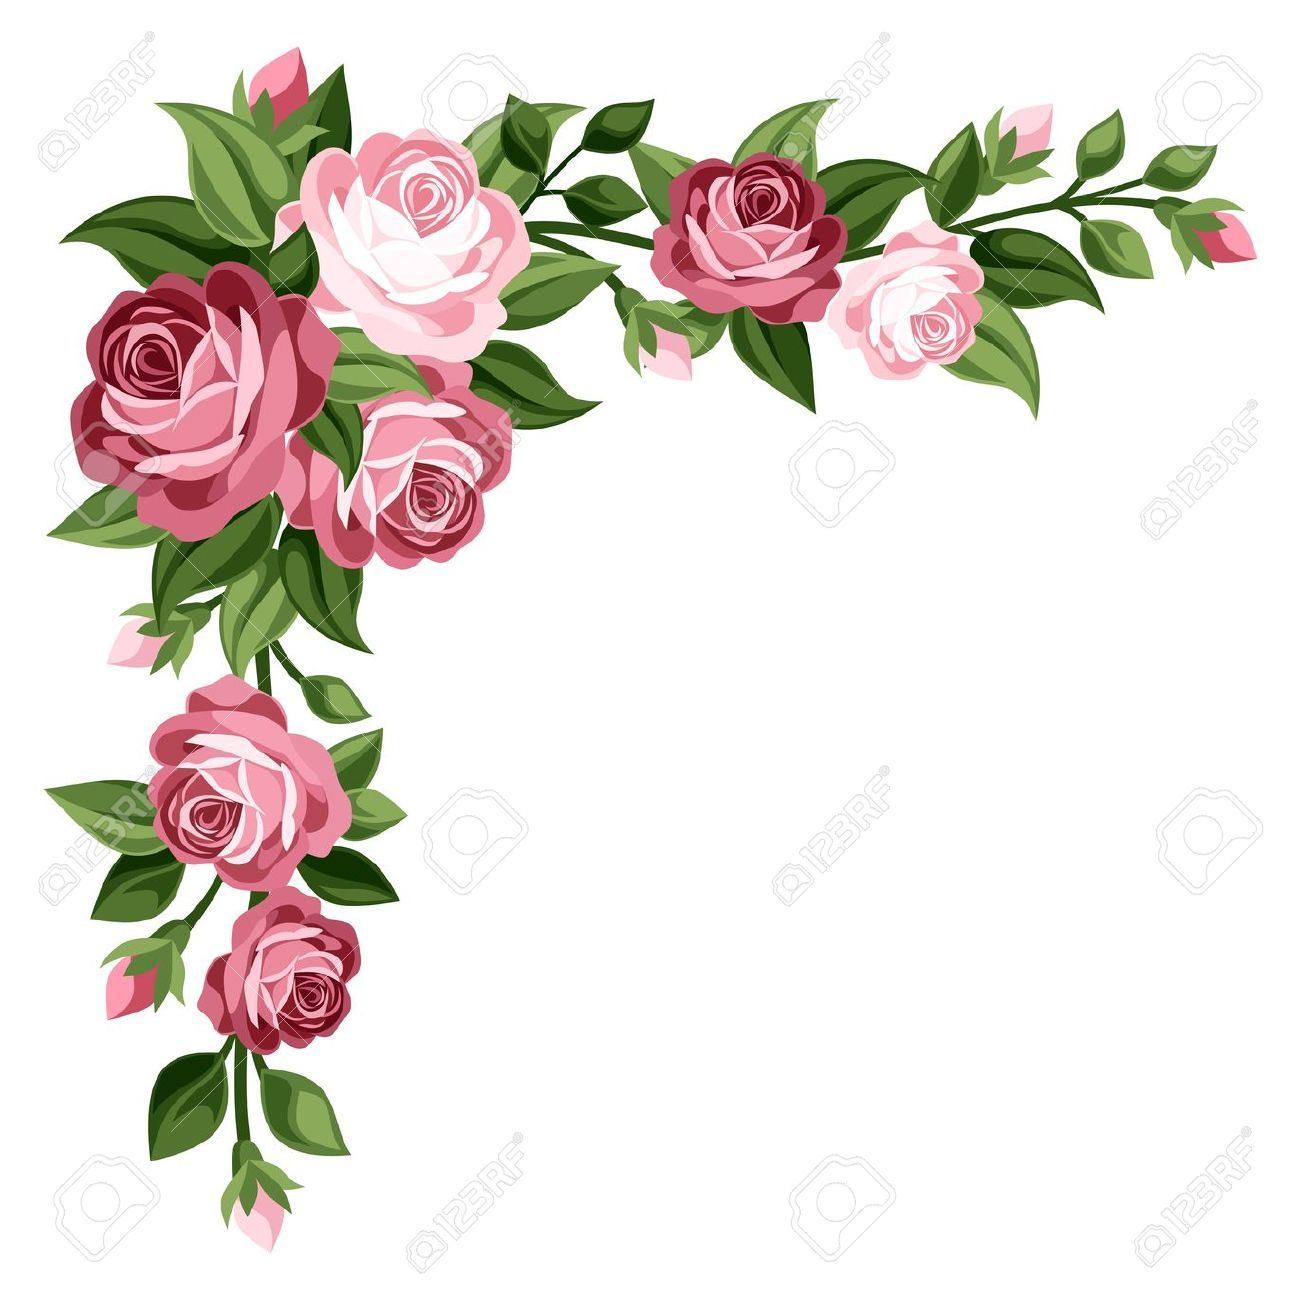 Rose Flower Border Clipart Tags Pinterest